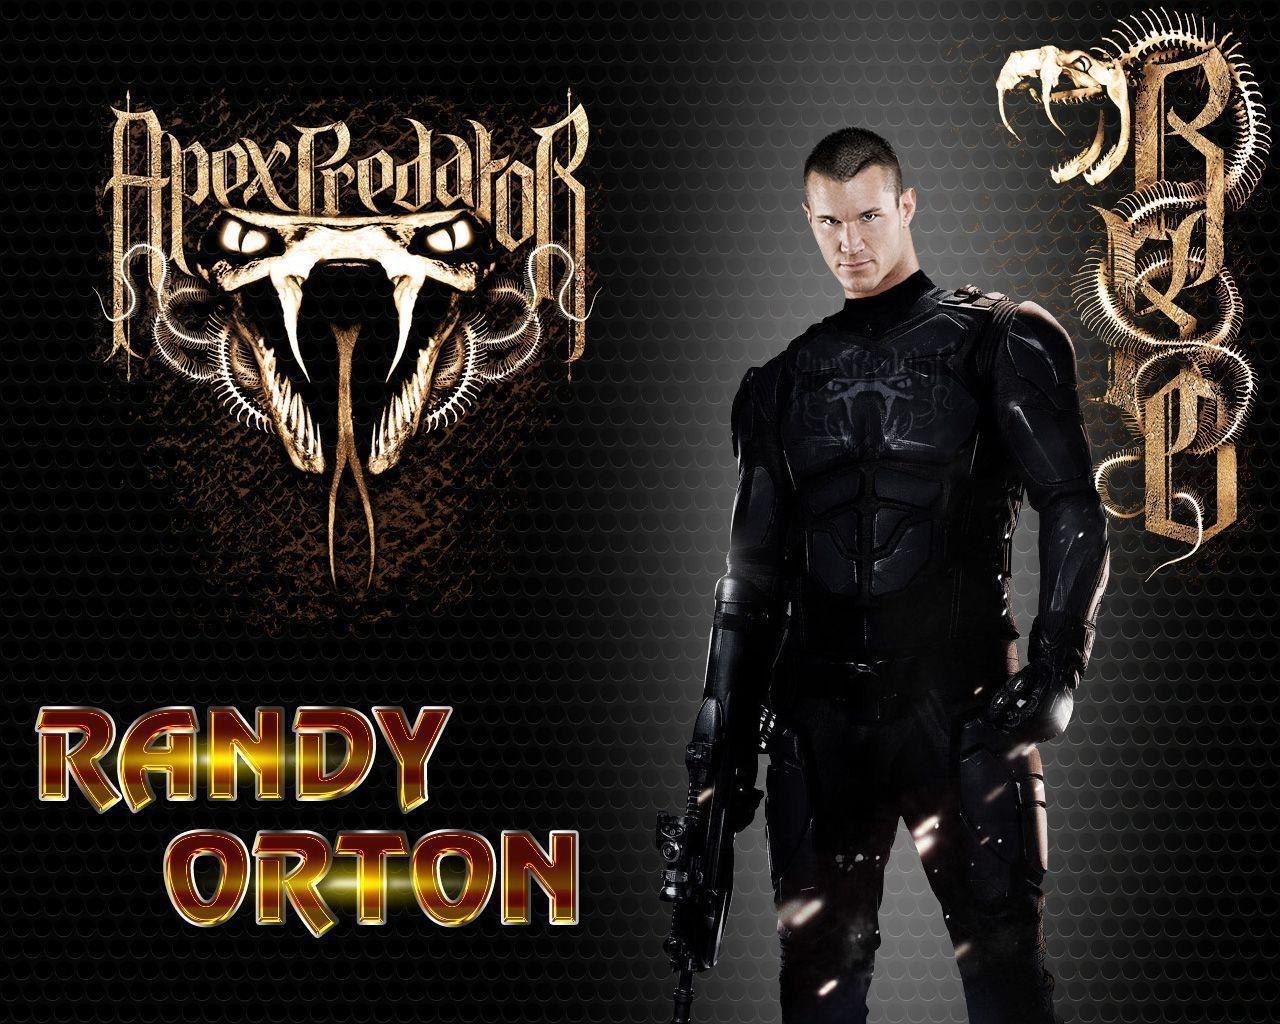 Randy Orton - WWE Superstars, WWE Wallpapers, WWE PPV's